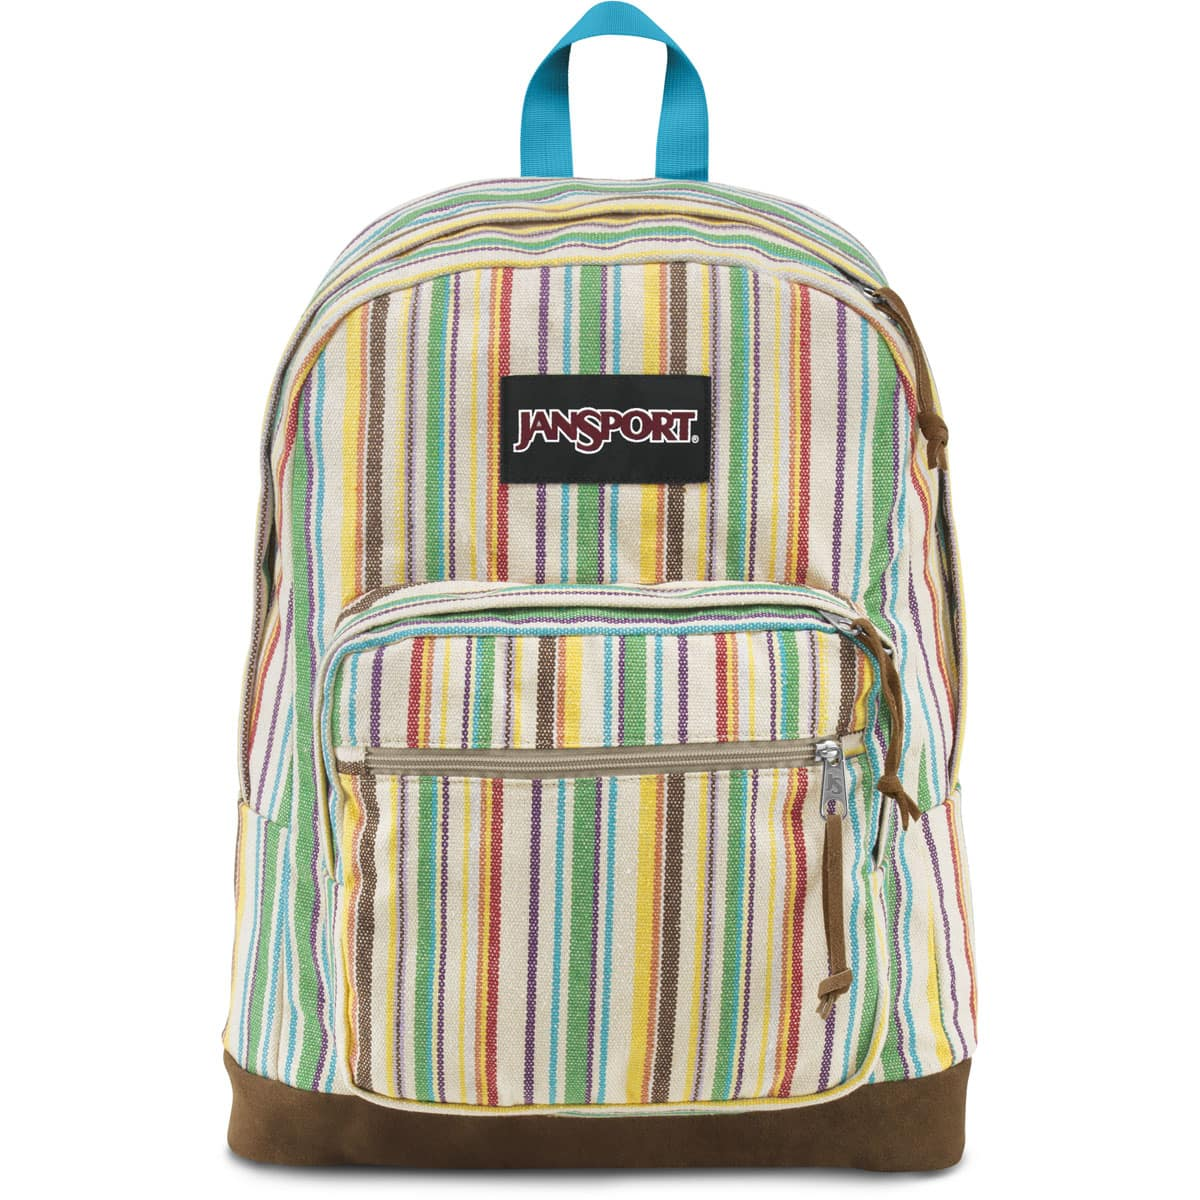 Jansport Right Pack Expressions Multi Weave Stripe Backpack $23 + free shipping